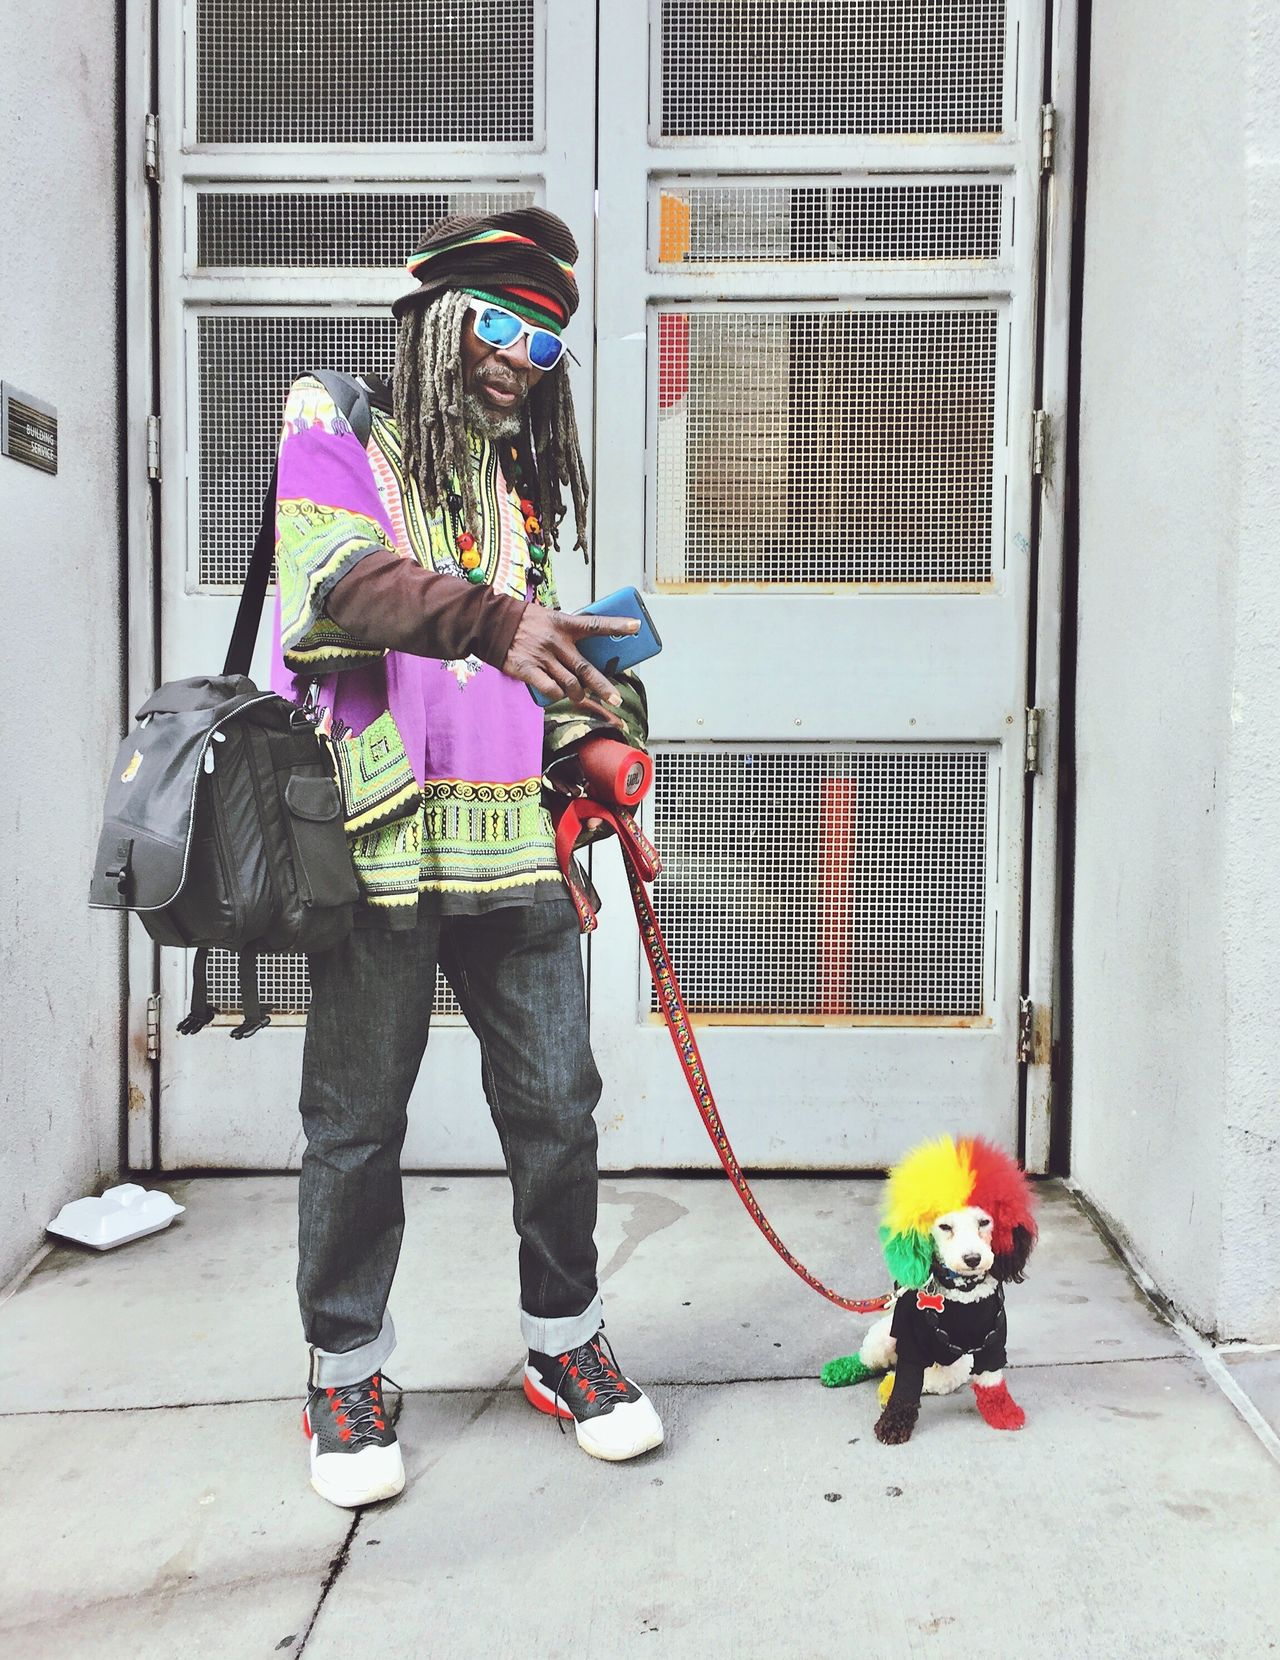 EyeEm Diversity RASTA puppy Headwear Outdoors Lifestyles Real People Adult One Person Building Exterior Happiness Looking At Camera peace Break The Mold The Street Photographer - 2017 EyeEm Awards